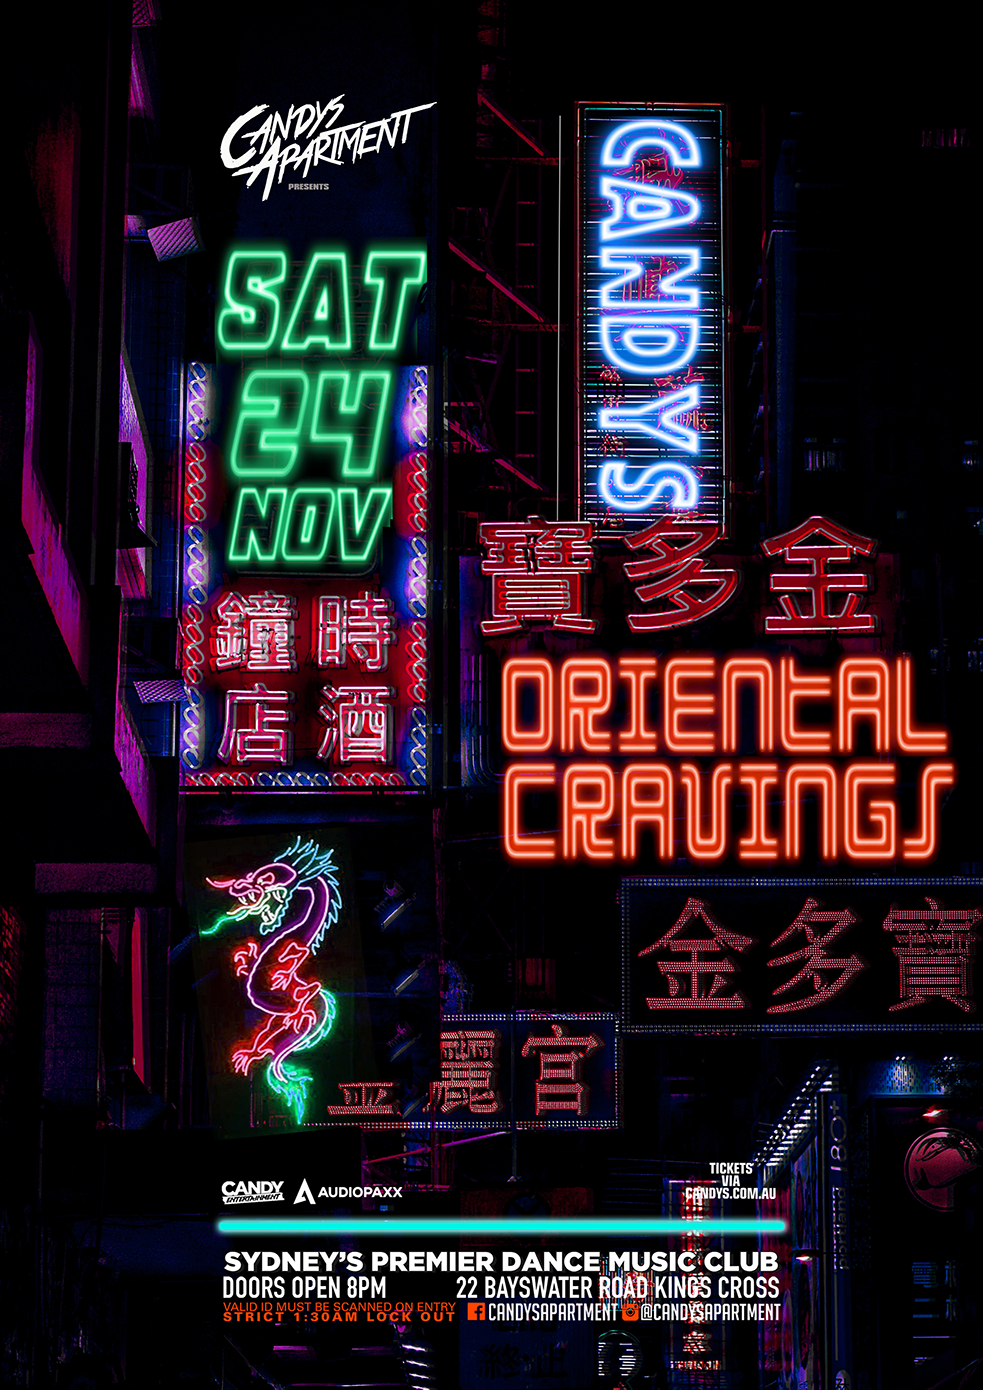 Candys Apartment ft. Oriental Cravings